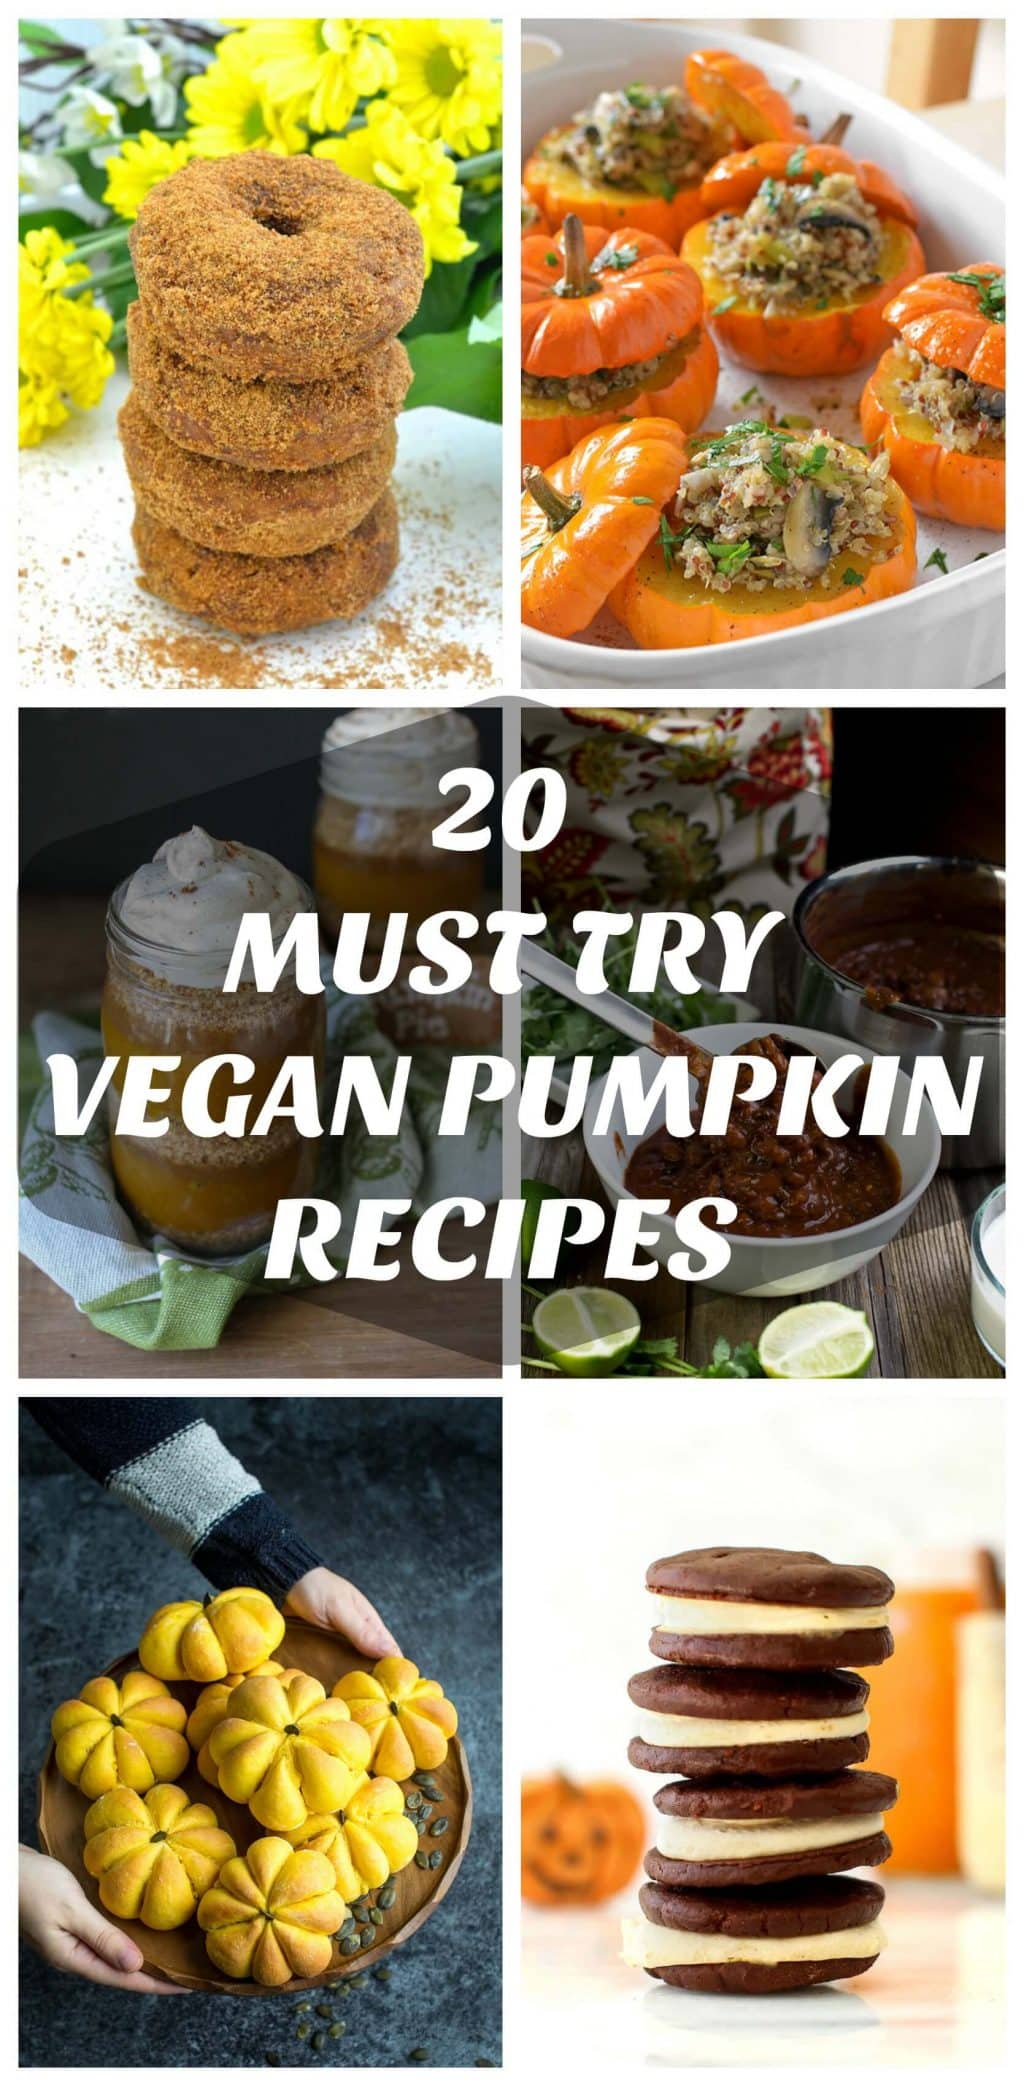 Take your pumpkin puree to a whole new level with these 2o Must Try Vegan Pumpkin Recipes! Whether you are a sweet or a savoury kind of person there is something here that will fit the bill.